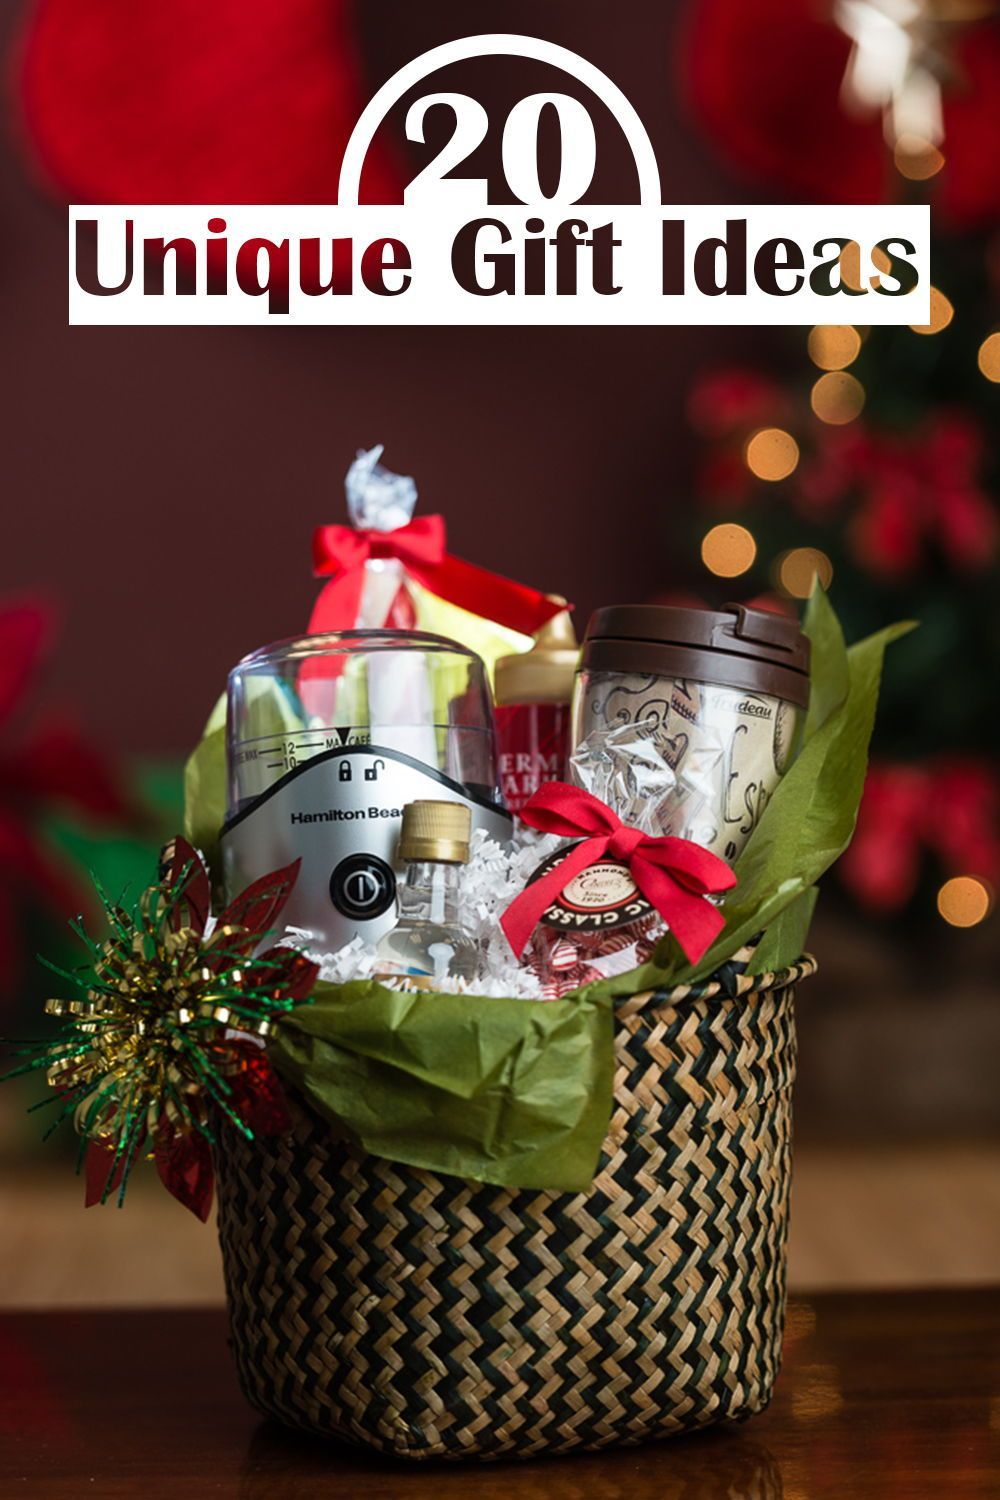 20 Unique Gift Ideas Show Off Your Taste With Coffee Gift Sets Christmas Gift Baskets Diy Diy Gift Set Easy Christmas Gifts